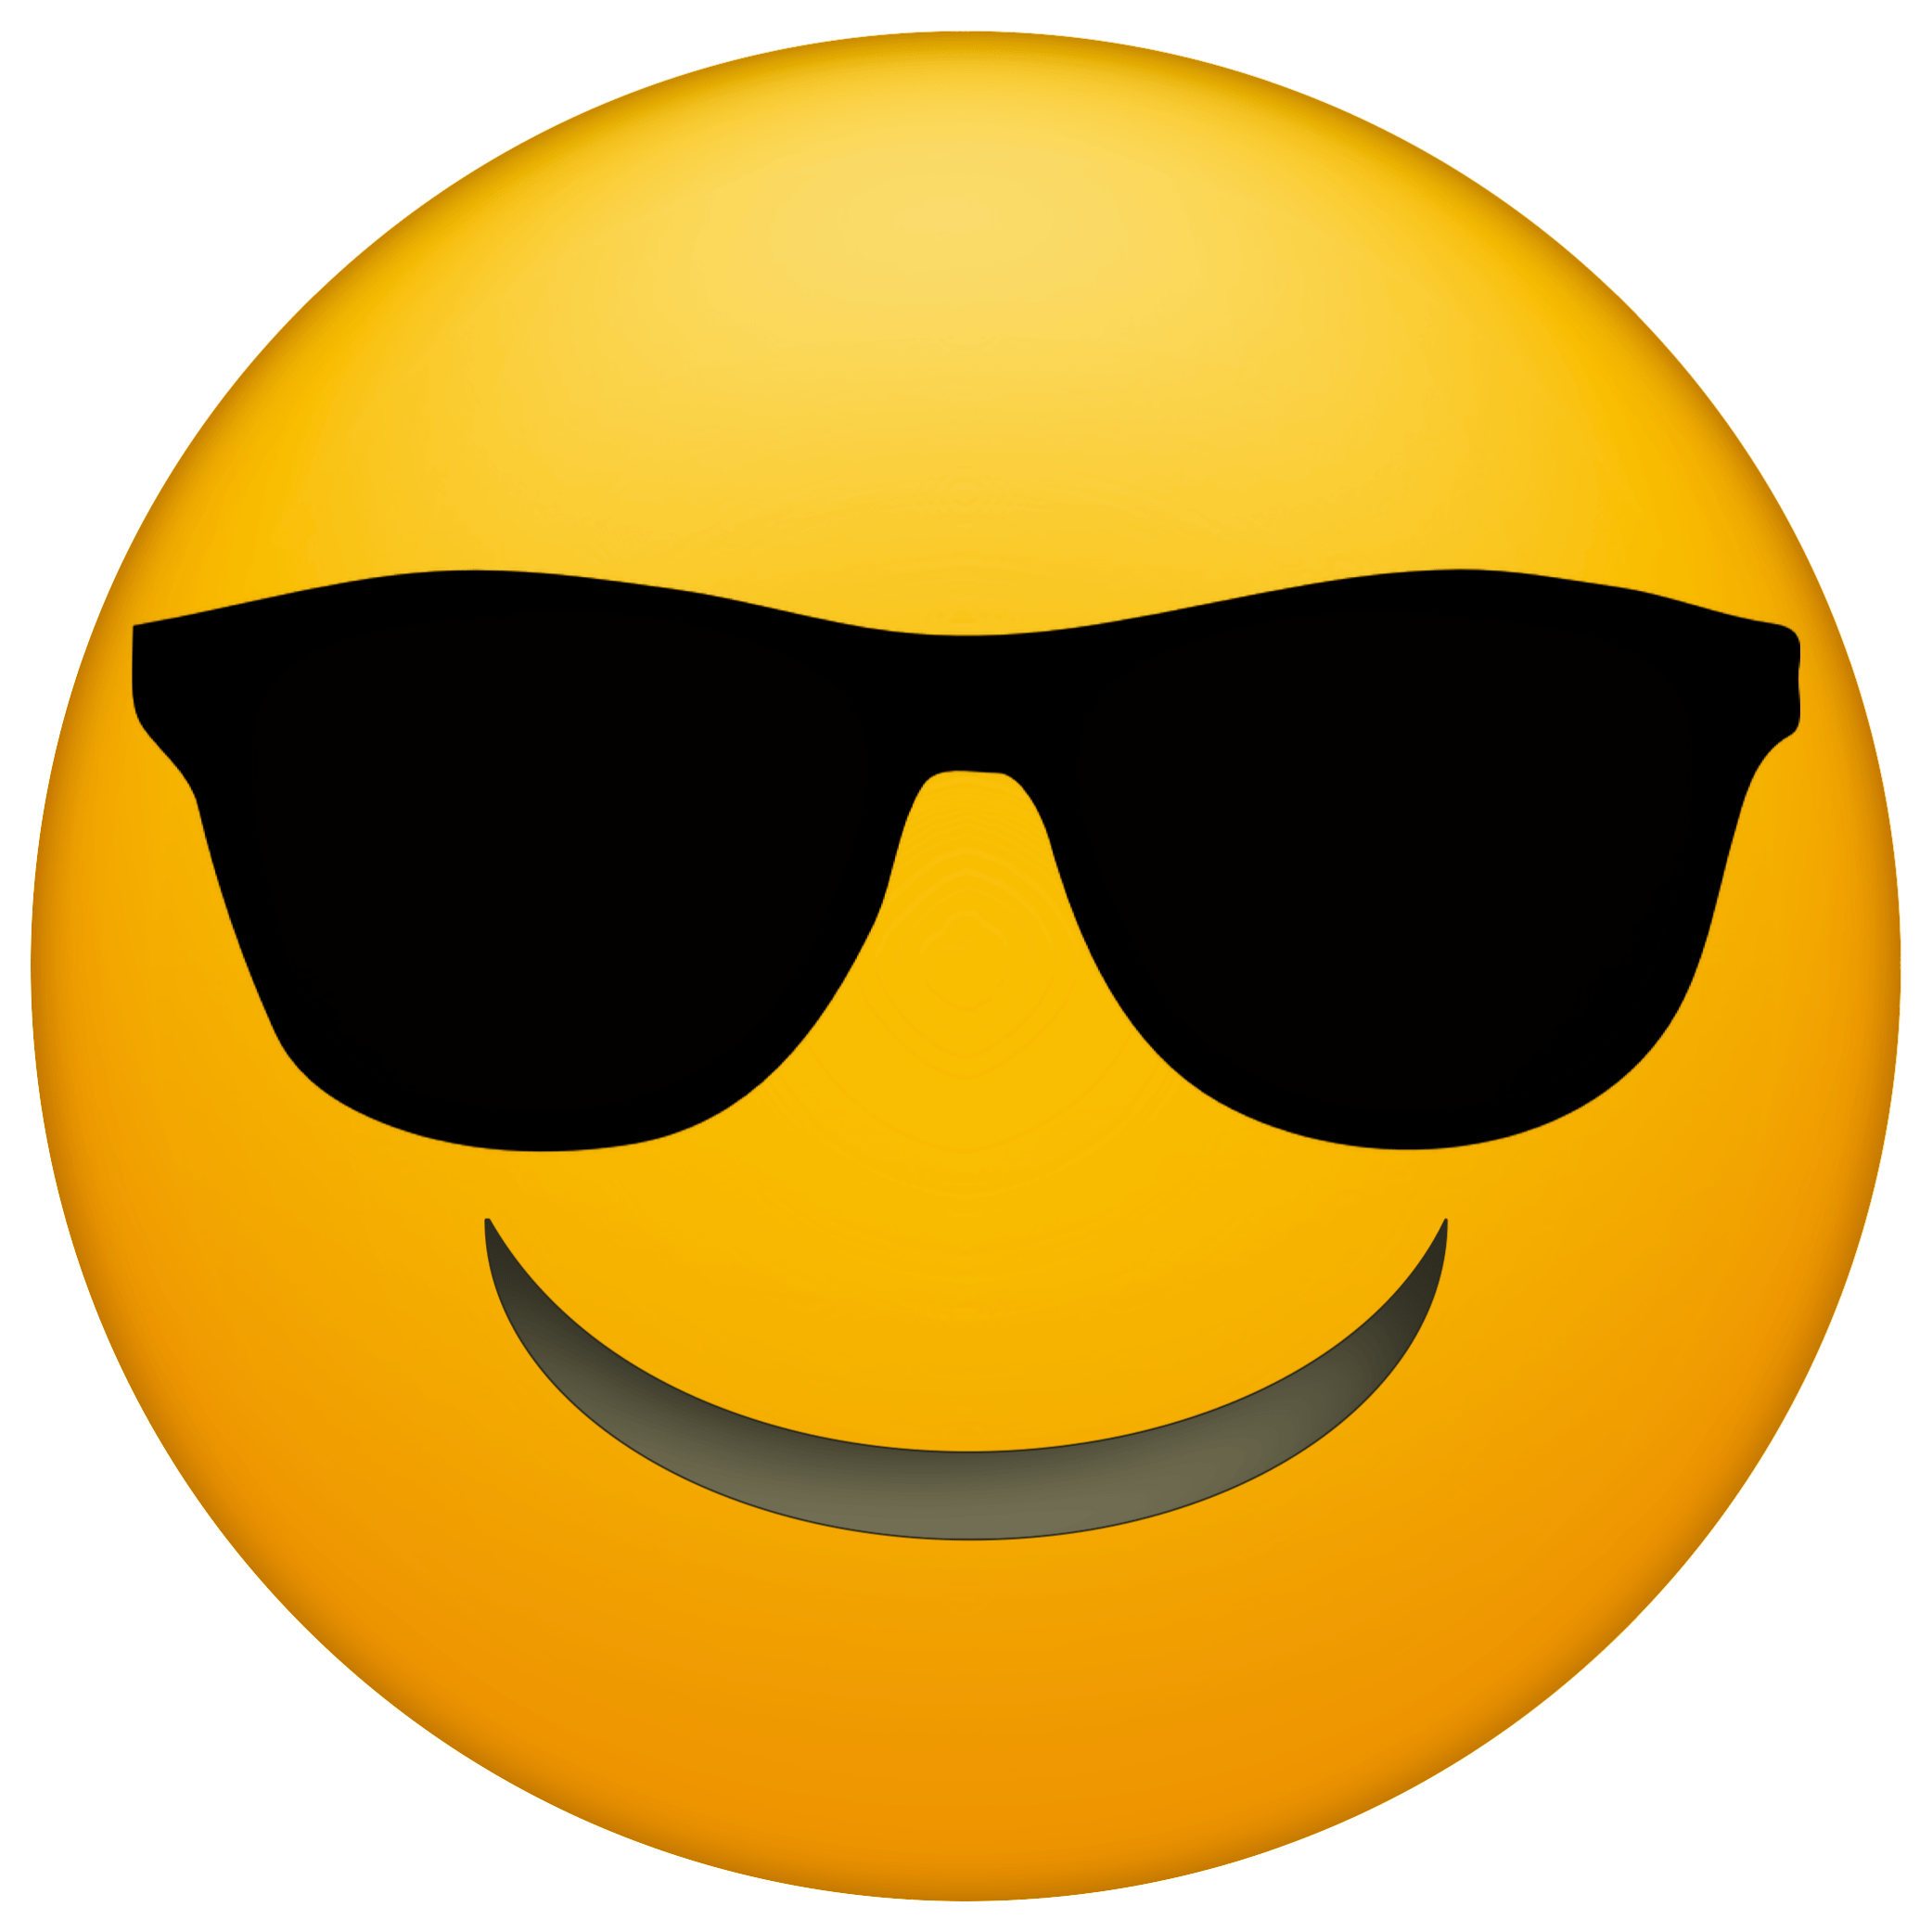 Cool emoji png. Sunglasses pixels recipes pinterest